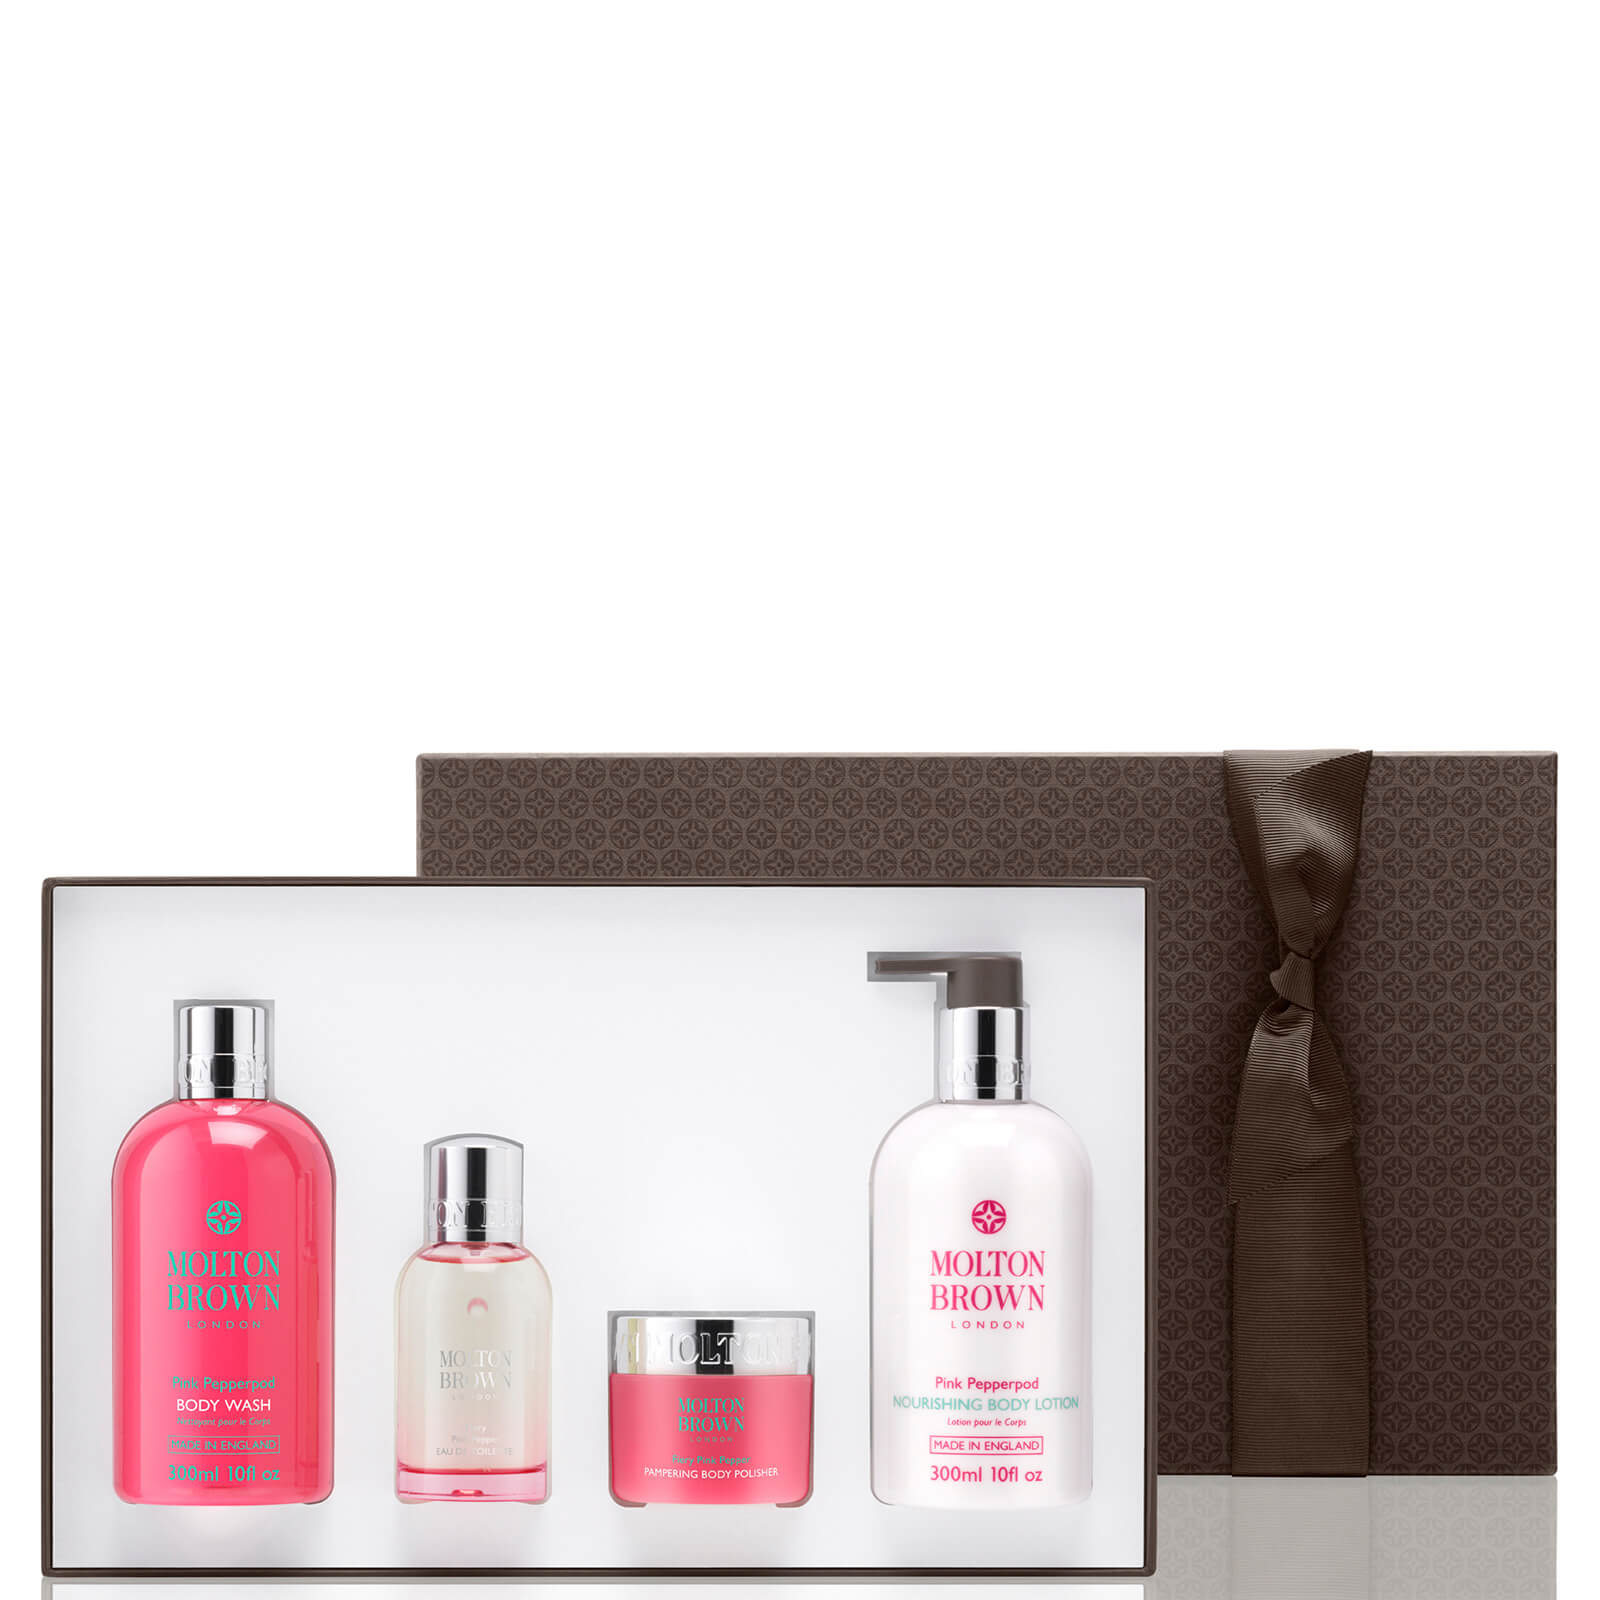 f21572e96249 Molton Brown Fiery Pink Pepper Pampering Body Gift Set. Product Description